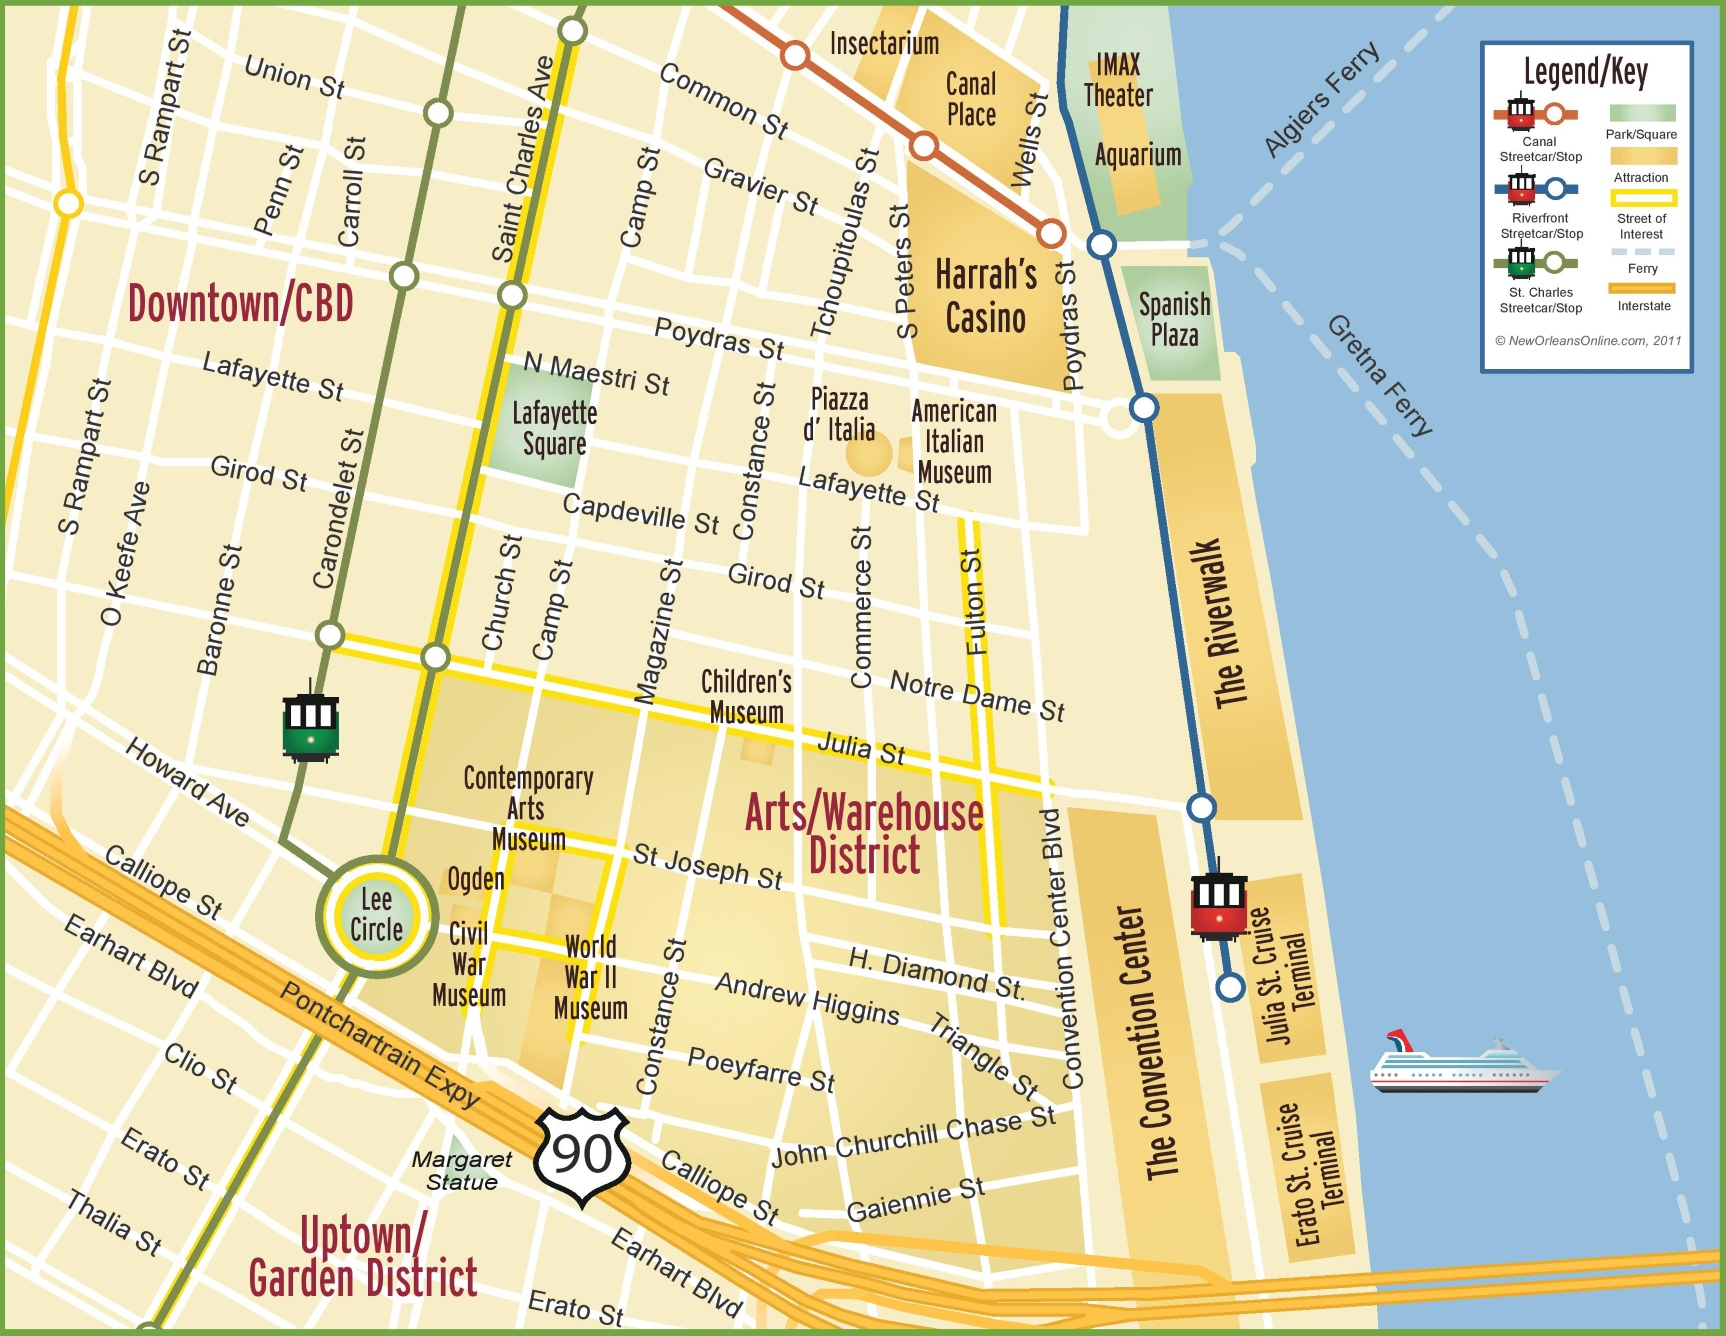 New Orleans Arts and Warehouse District map